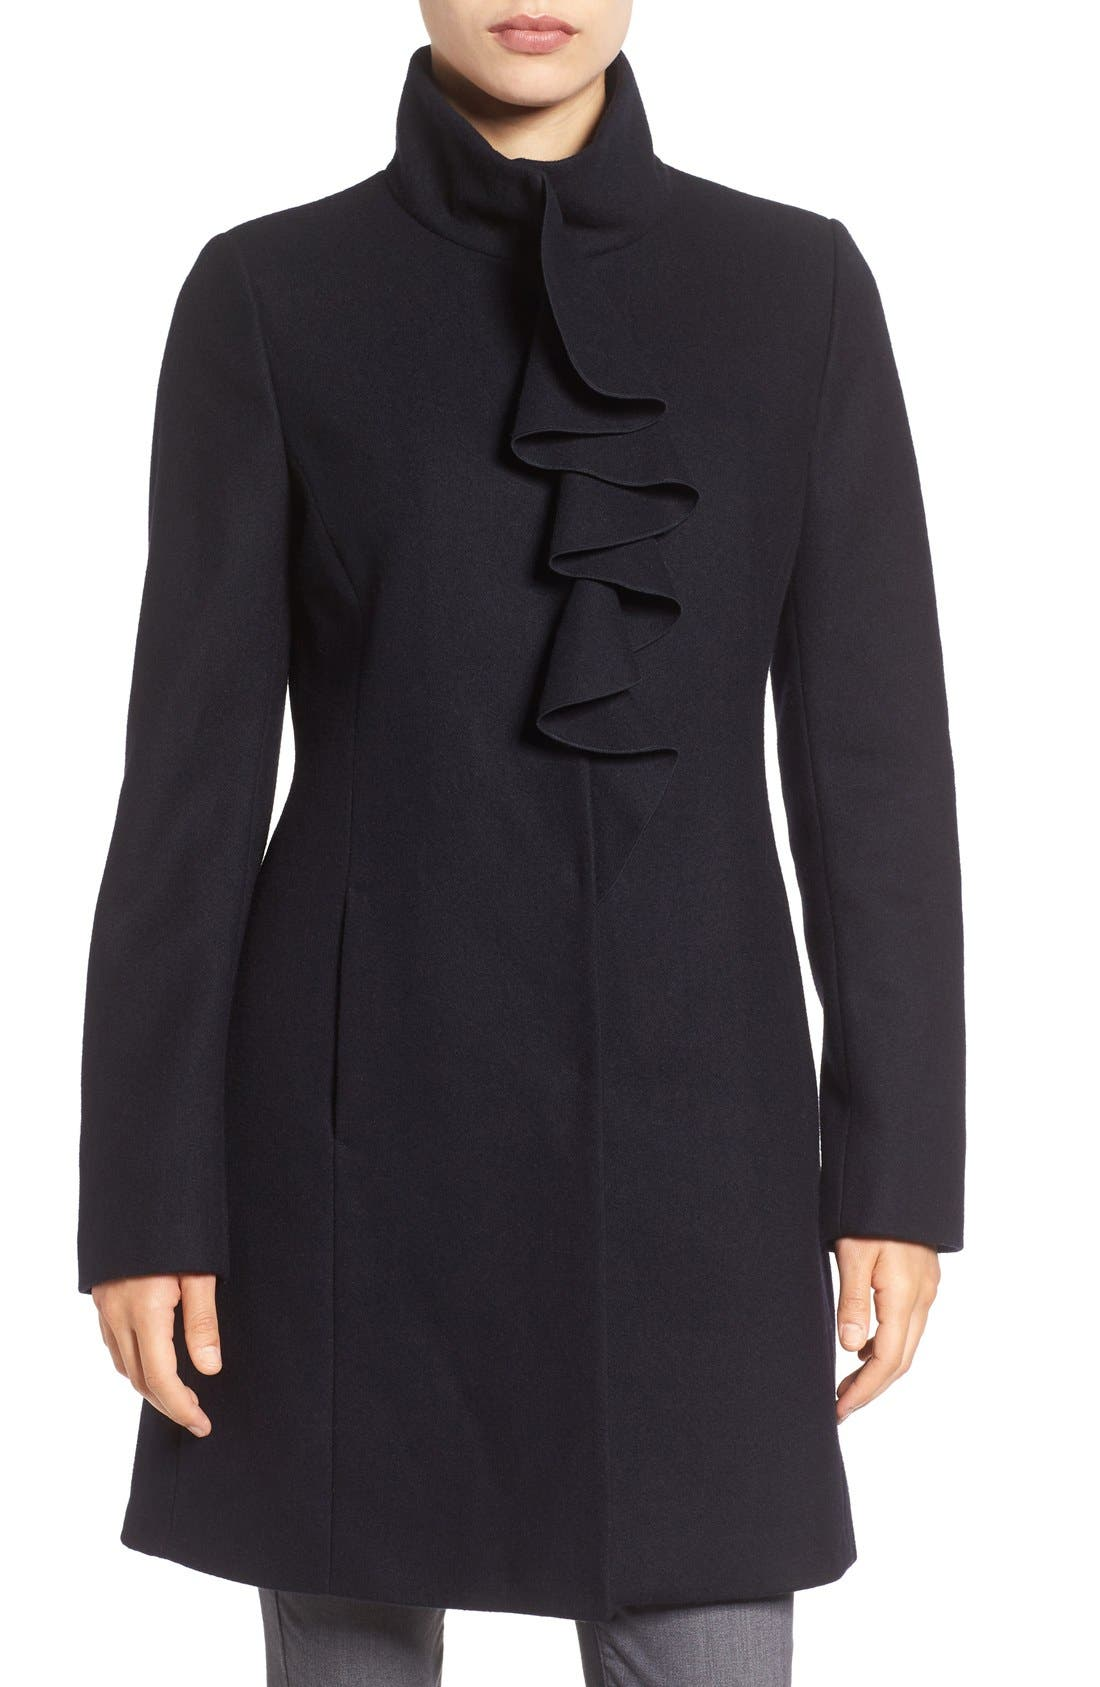 Alternate Image 1 Selected - Tahari Kate Ruffle Wool Blend Coat